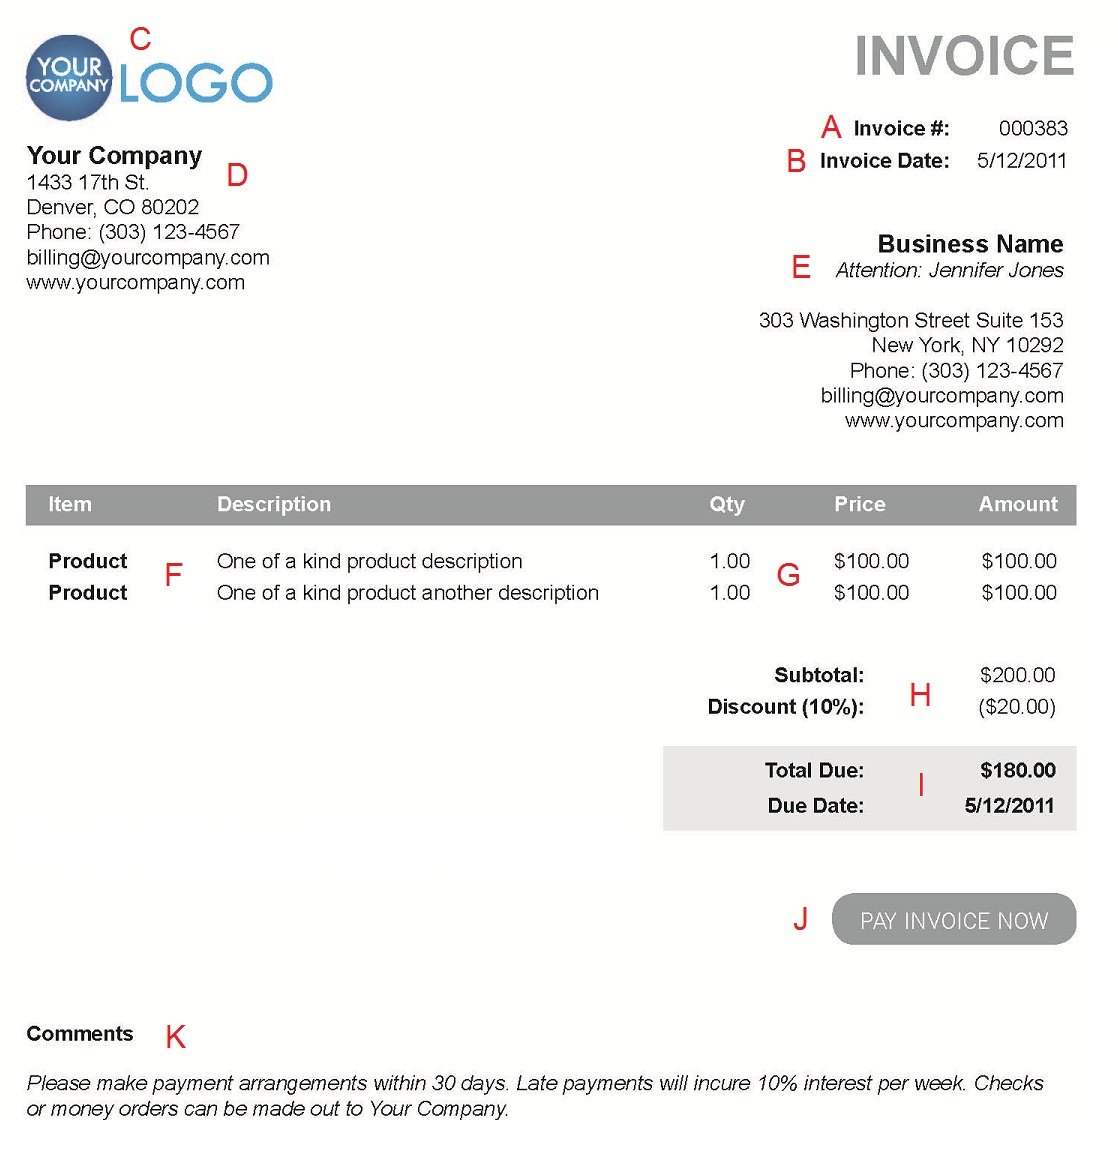 Centralasianshepherdus  Splendid The  Different Sections Of An Electronic Payment Invoice With Outstanding A  With Beauteous Vintage Invoice Also How To Create An Invoice In Quickbooks In Addition Performa Invoice Meaning And Xero Delete Invoice As Well As Quickbooks Invoice Template Excel Additionally Sample Letter For Invoice Payment From Paysimplecom With Centralasianshepherdus  Outstanding The  Different Sections Of An Electronic Payment Invoice With Beauteous A  And Splendid Vintage Invoice Also How To Create An Invoice In Quickbooks In Addition Performa Invoice Meaning From Paysimplecom